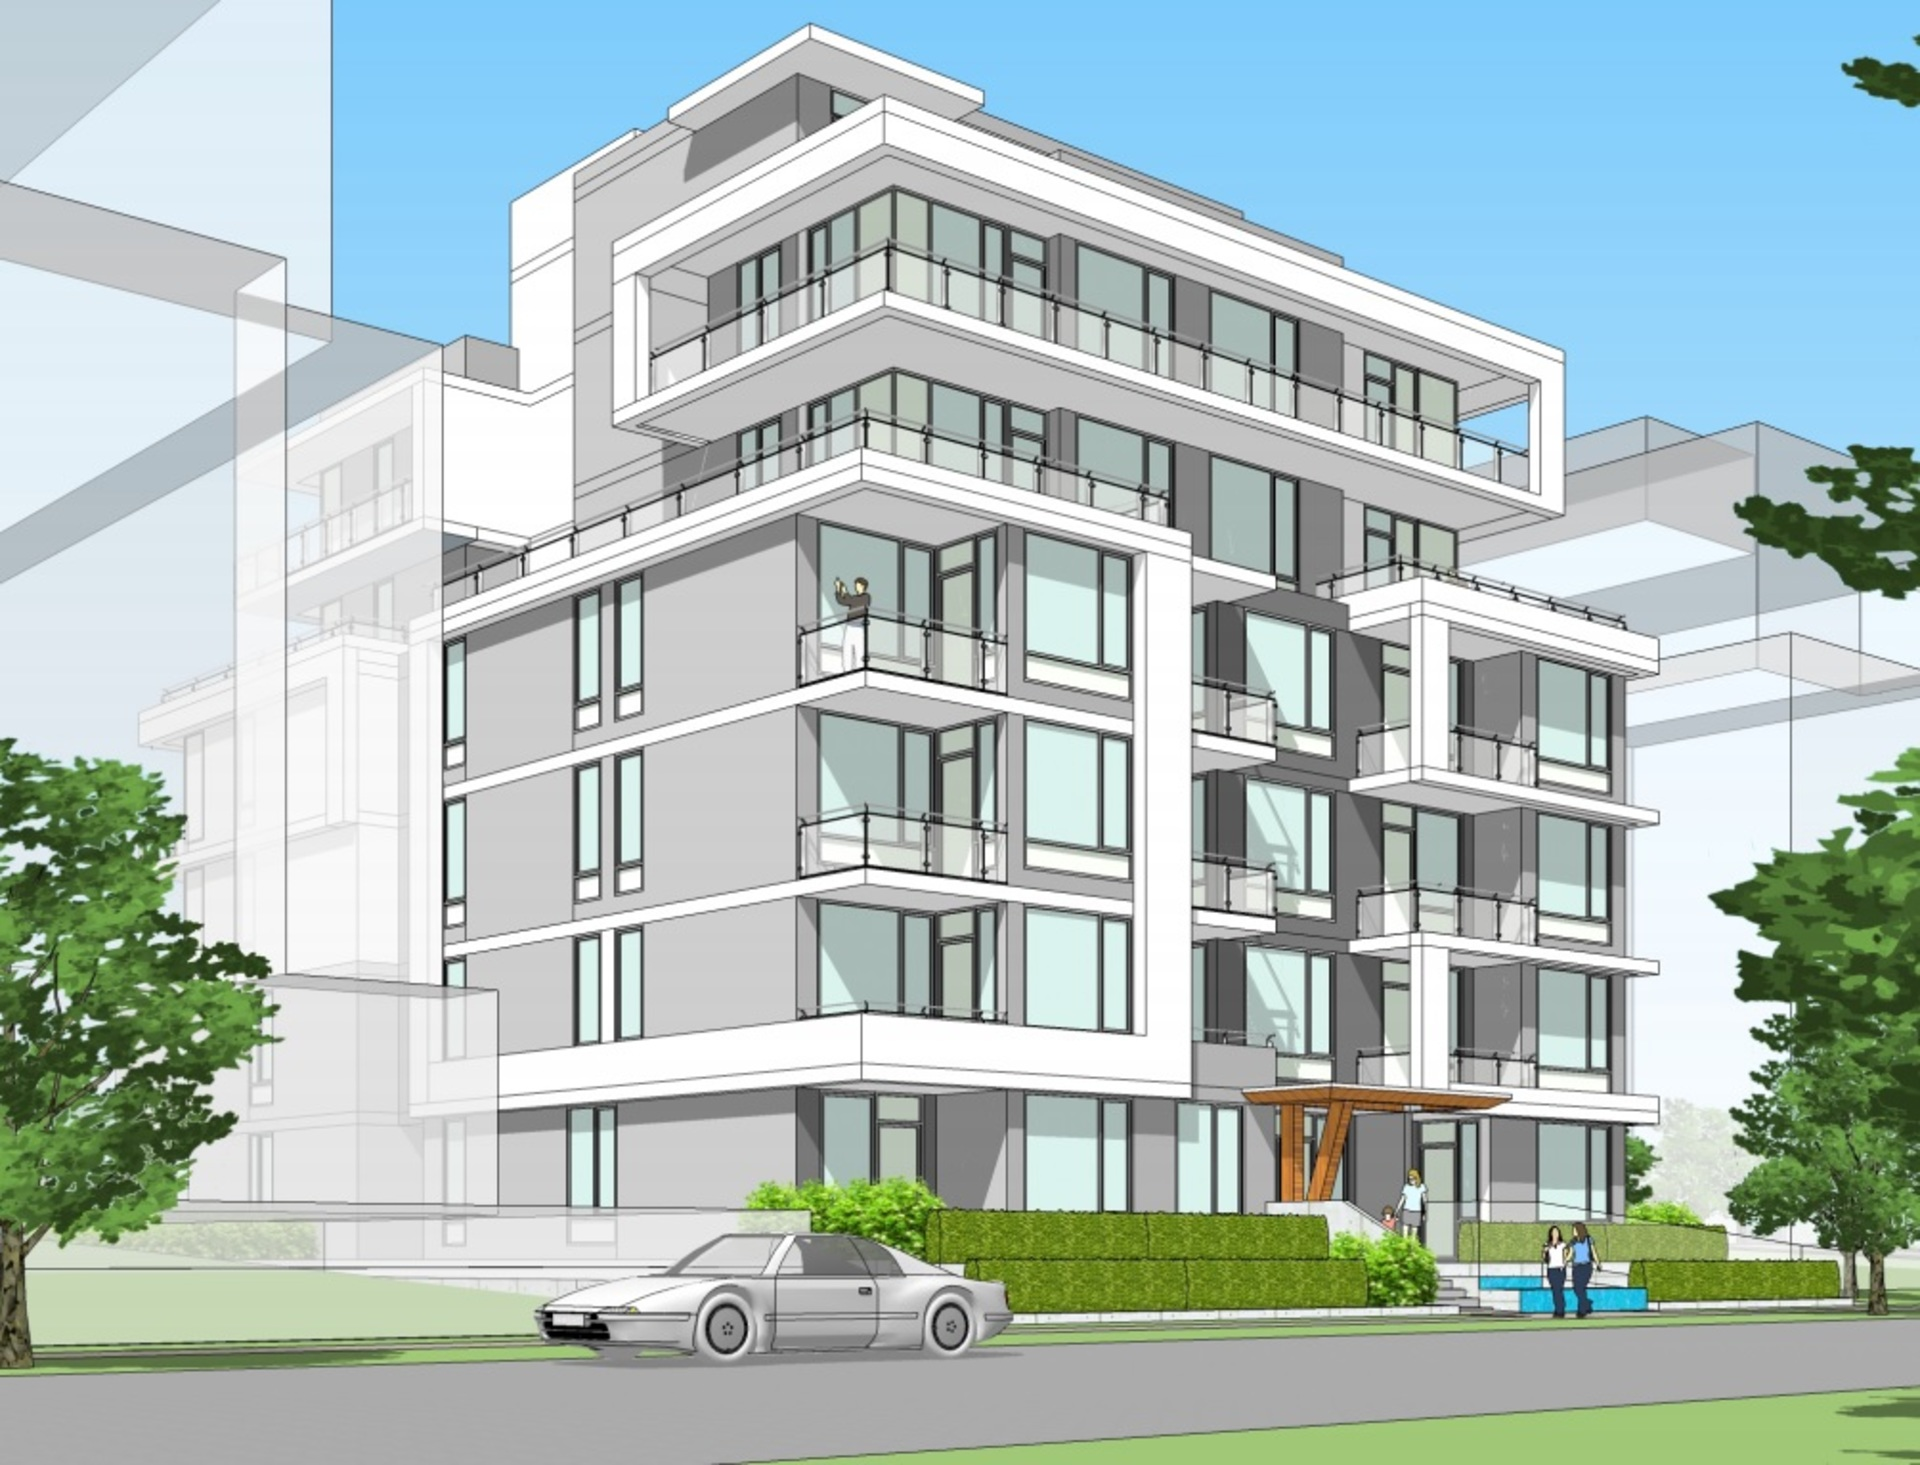 7843-cambie_3 at 7843 Cambie (7843 Cambie Street, Cambie, Vancouver West)